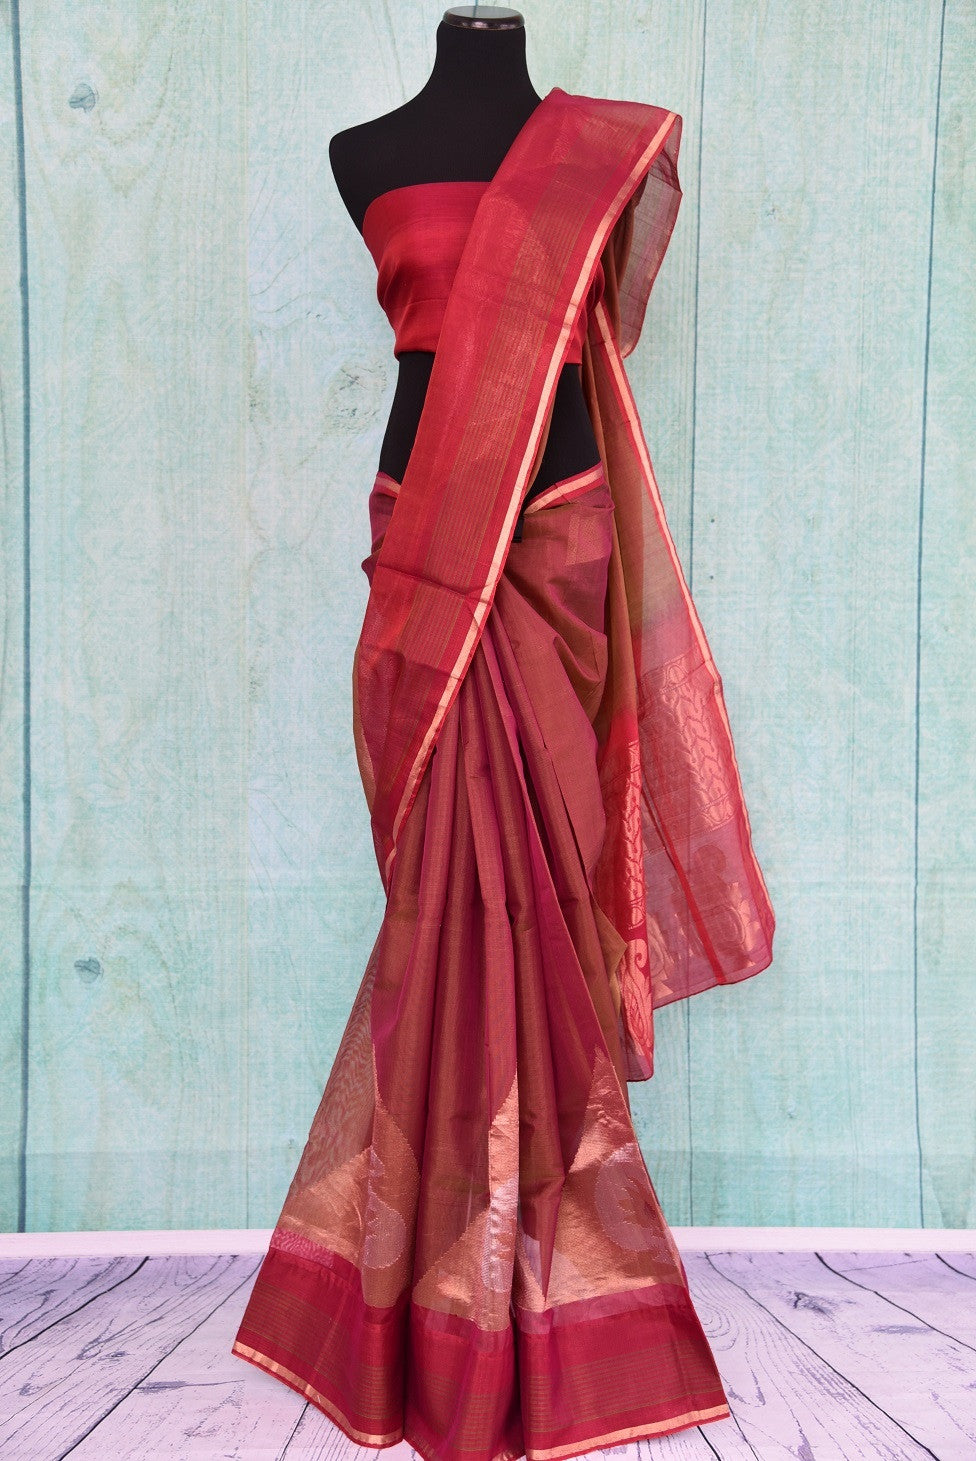 90C258 Traditional south silk saree available online in USA. The maroon and gold saree comes with paisley design and is great for festive occasions and pujas. This lovely saree is sure to be a versatile hit in your ethnic wear wardrobe.